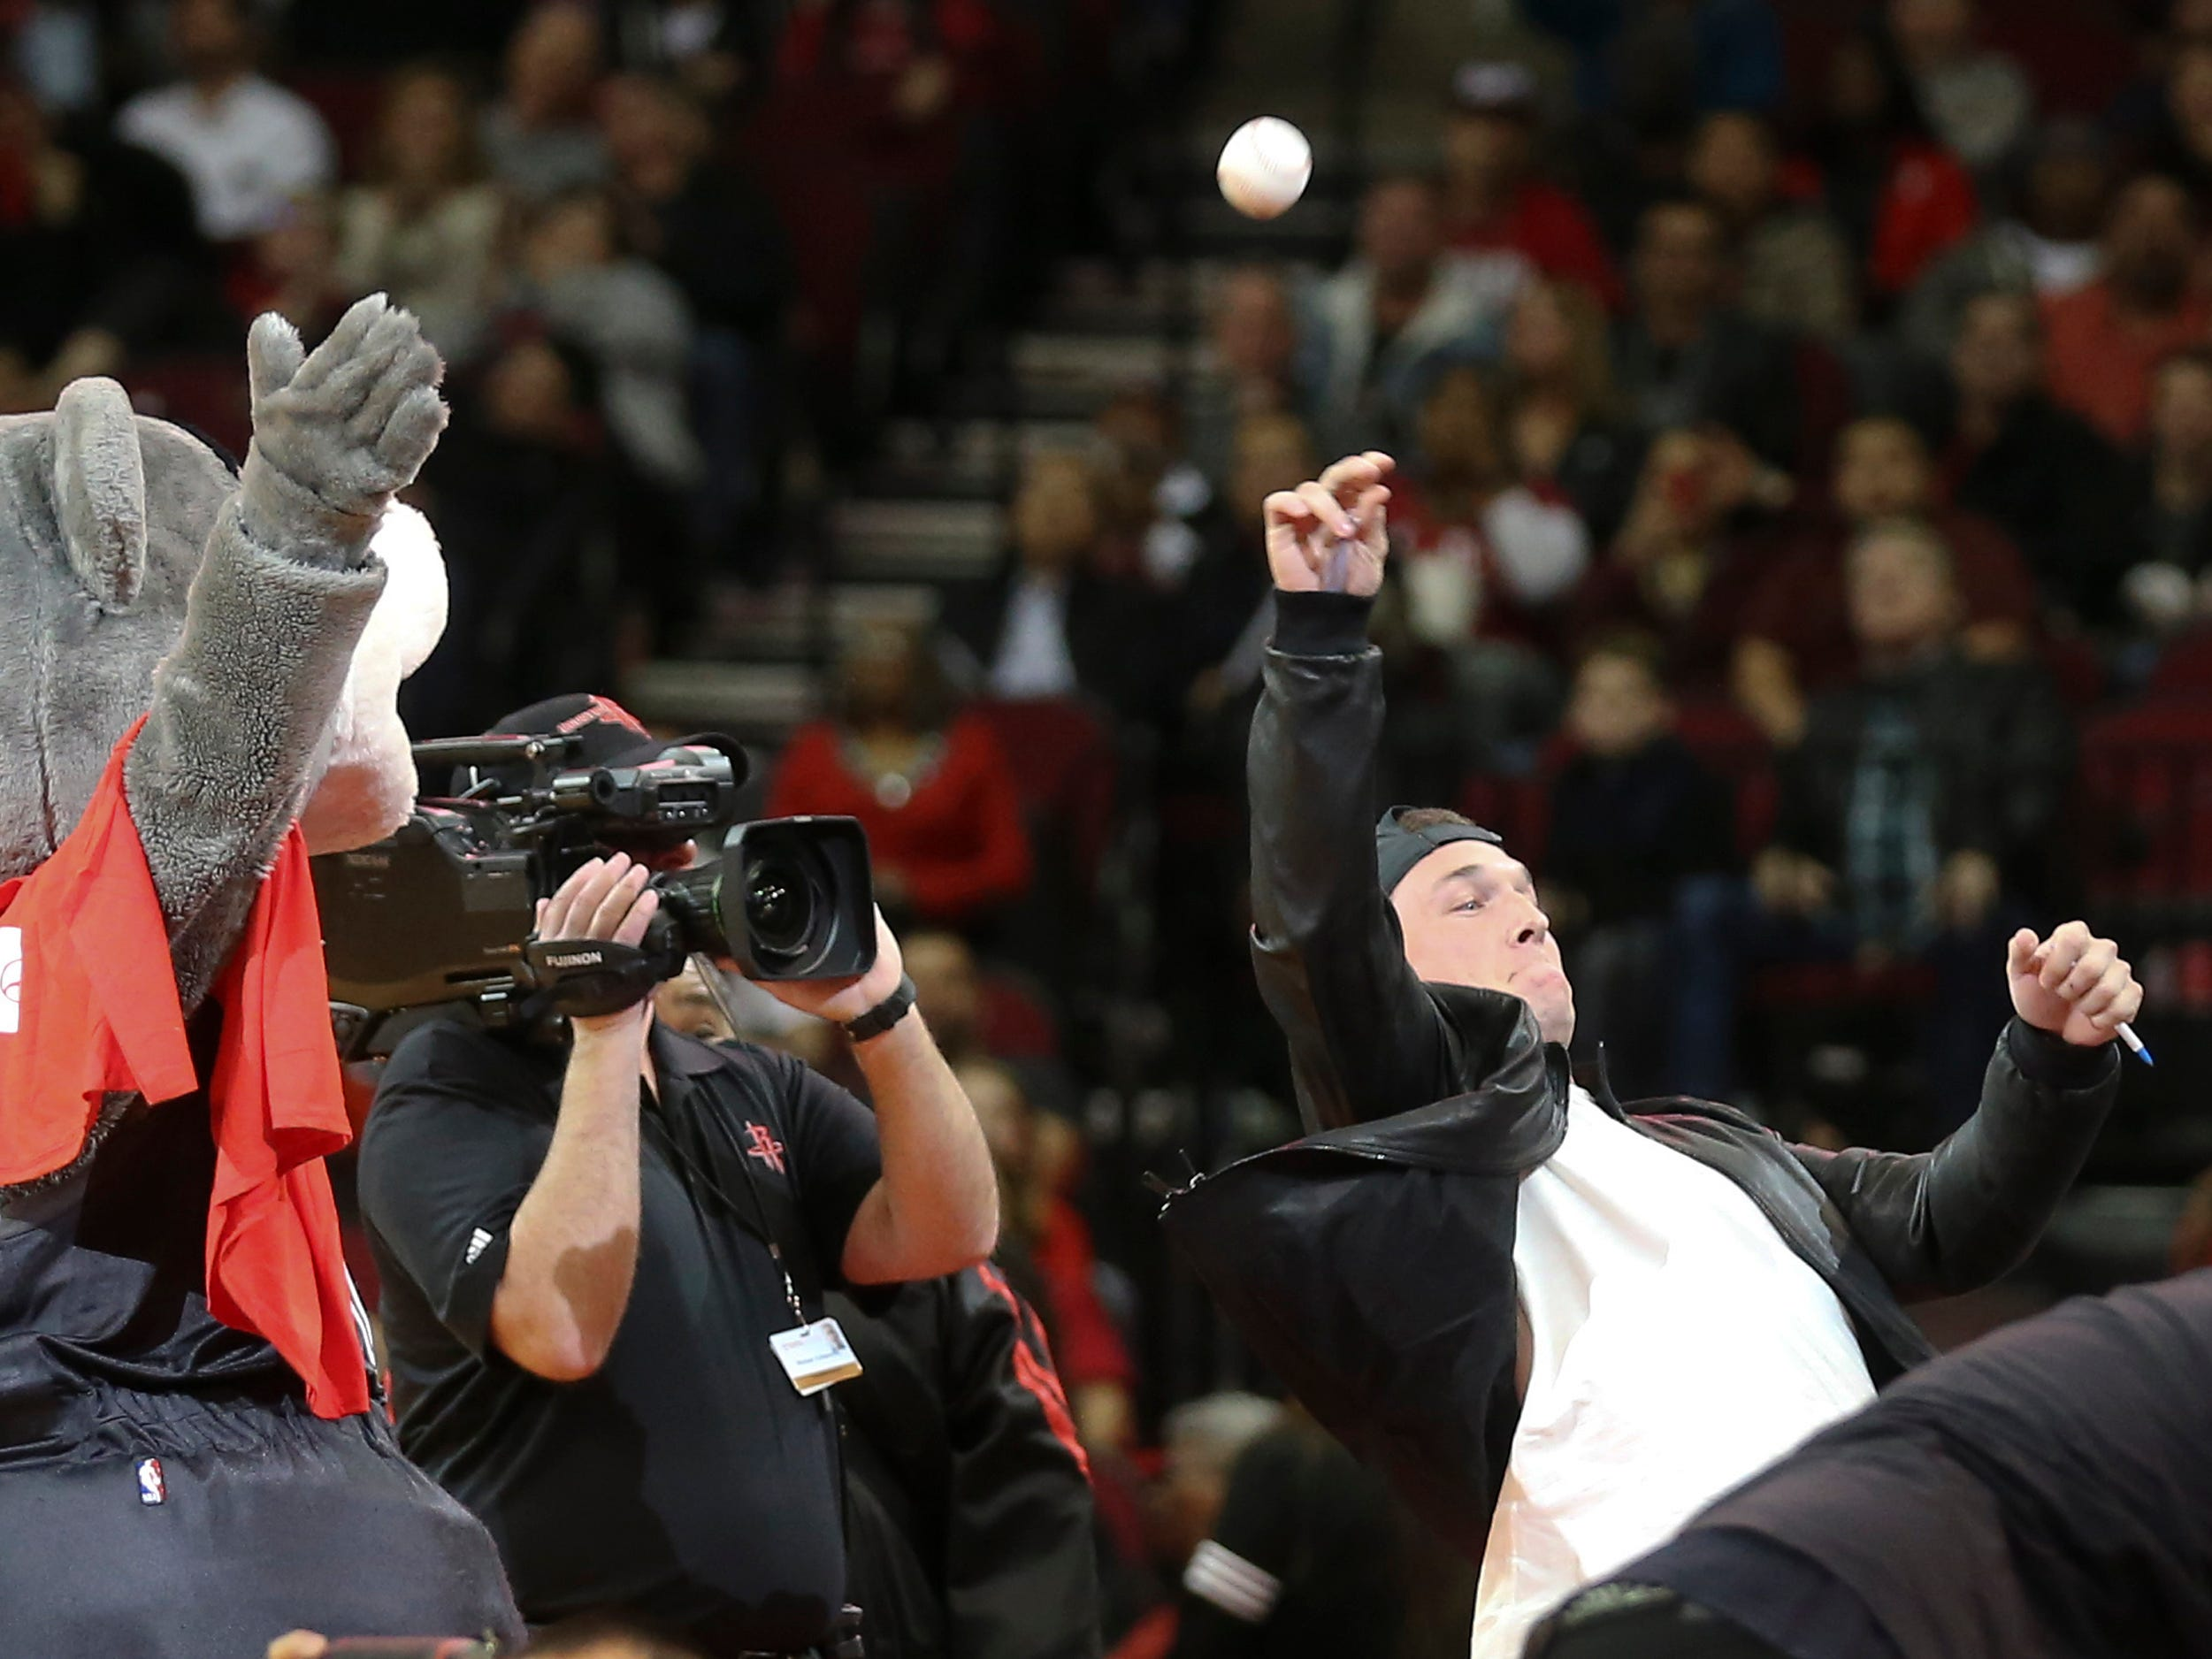 Dec. 11: Astros third baseman Alex Bregman throws a baseball to the fans as the Rockets play the Trail Blazers in the second quarter at Toyota Center.